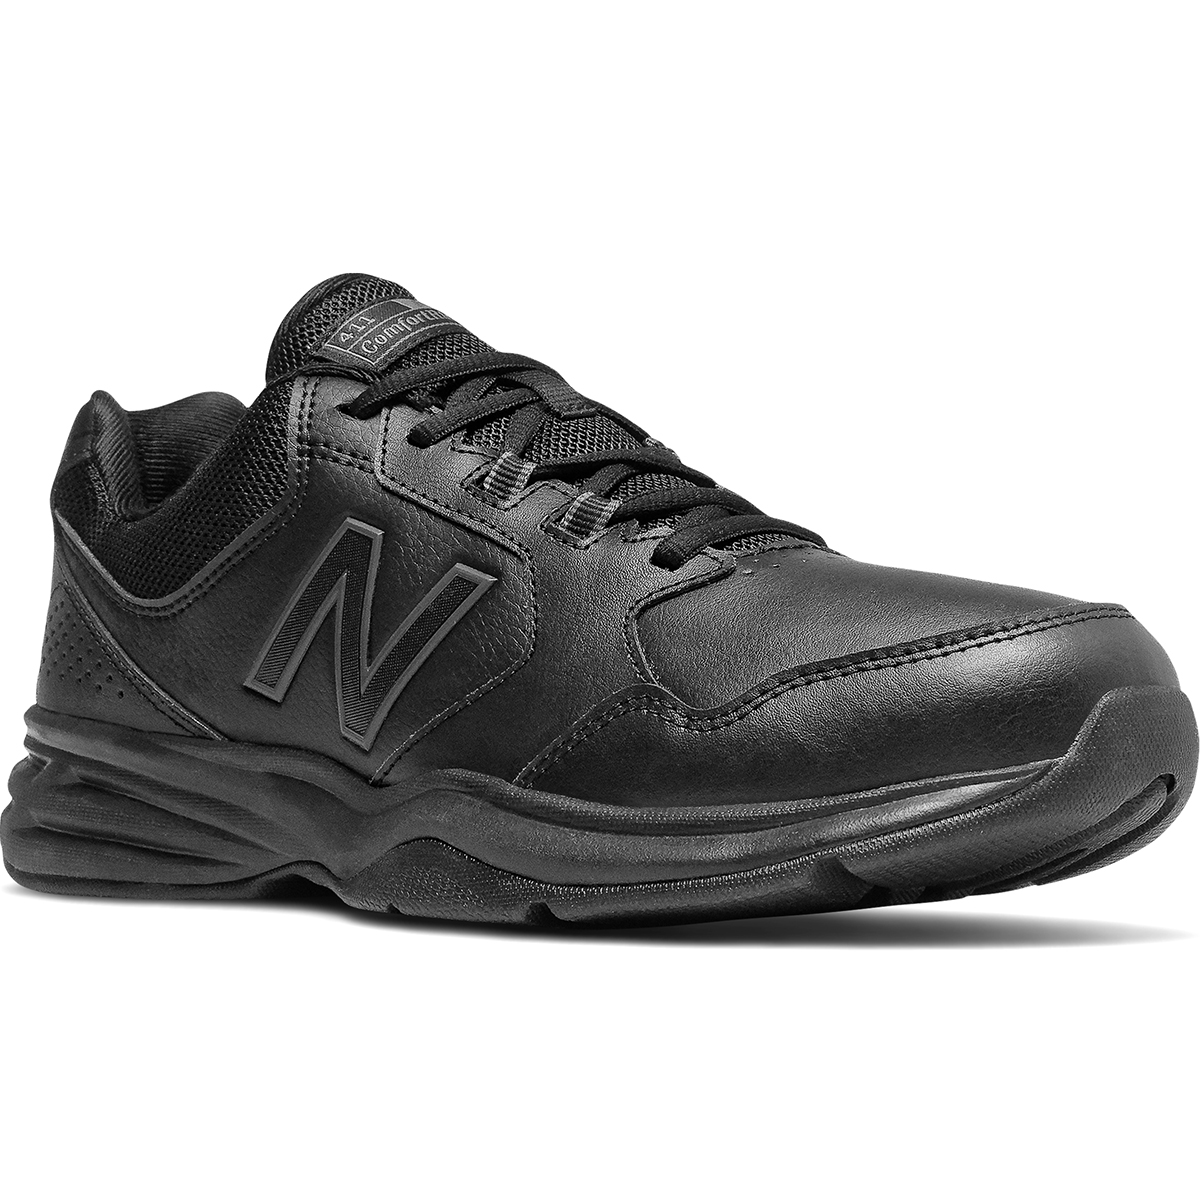 New Balance Men's 411 Walking Shoes, Wide - Black, 10.5